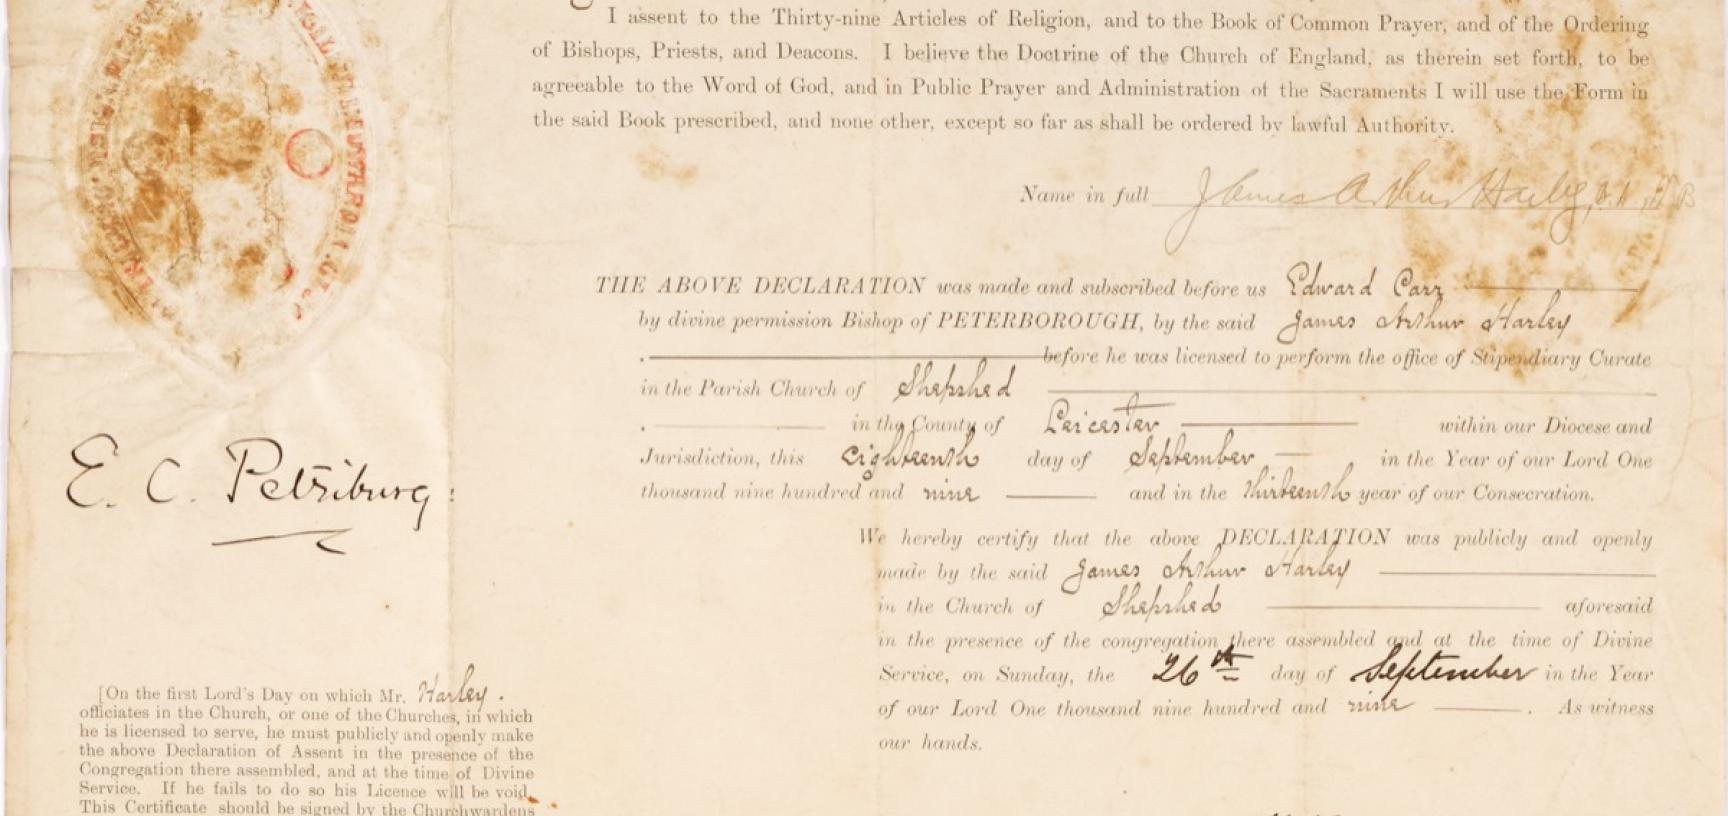 Document confirming Harley's declaration of assent to the Thirty-Nine Articles of Religion, 26 September 1909, at the time of his accepting the position of Stipendiary Curate in the Parish Church of St Botolph, in Shepshed, Leicestershire. (Courtesy Micha